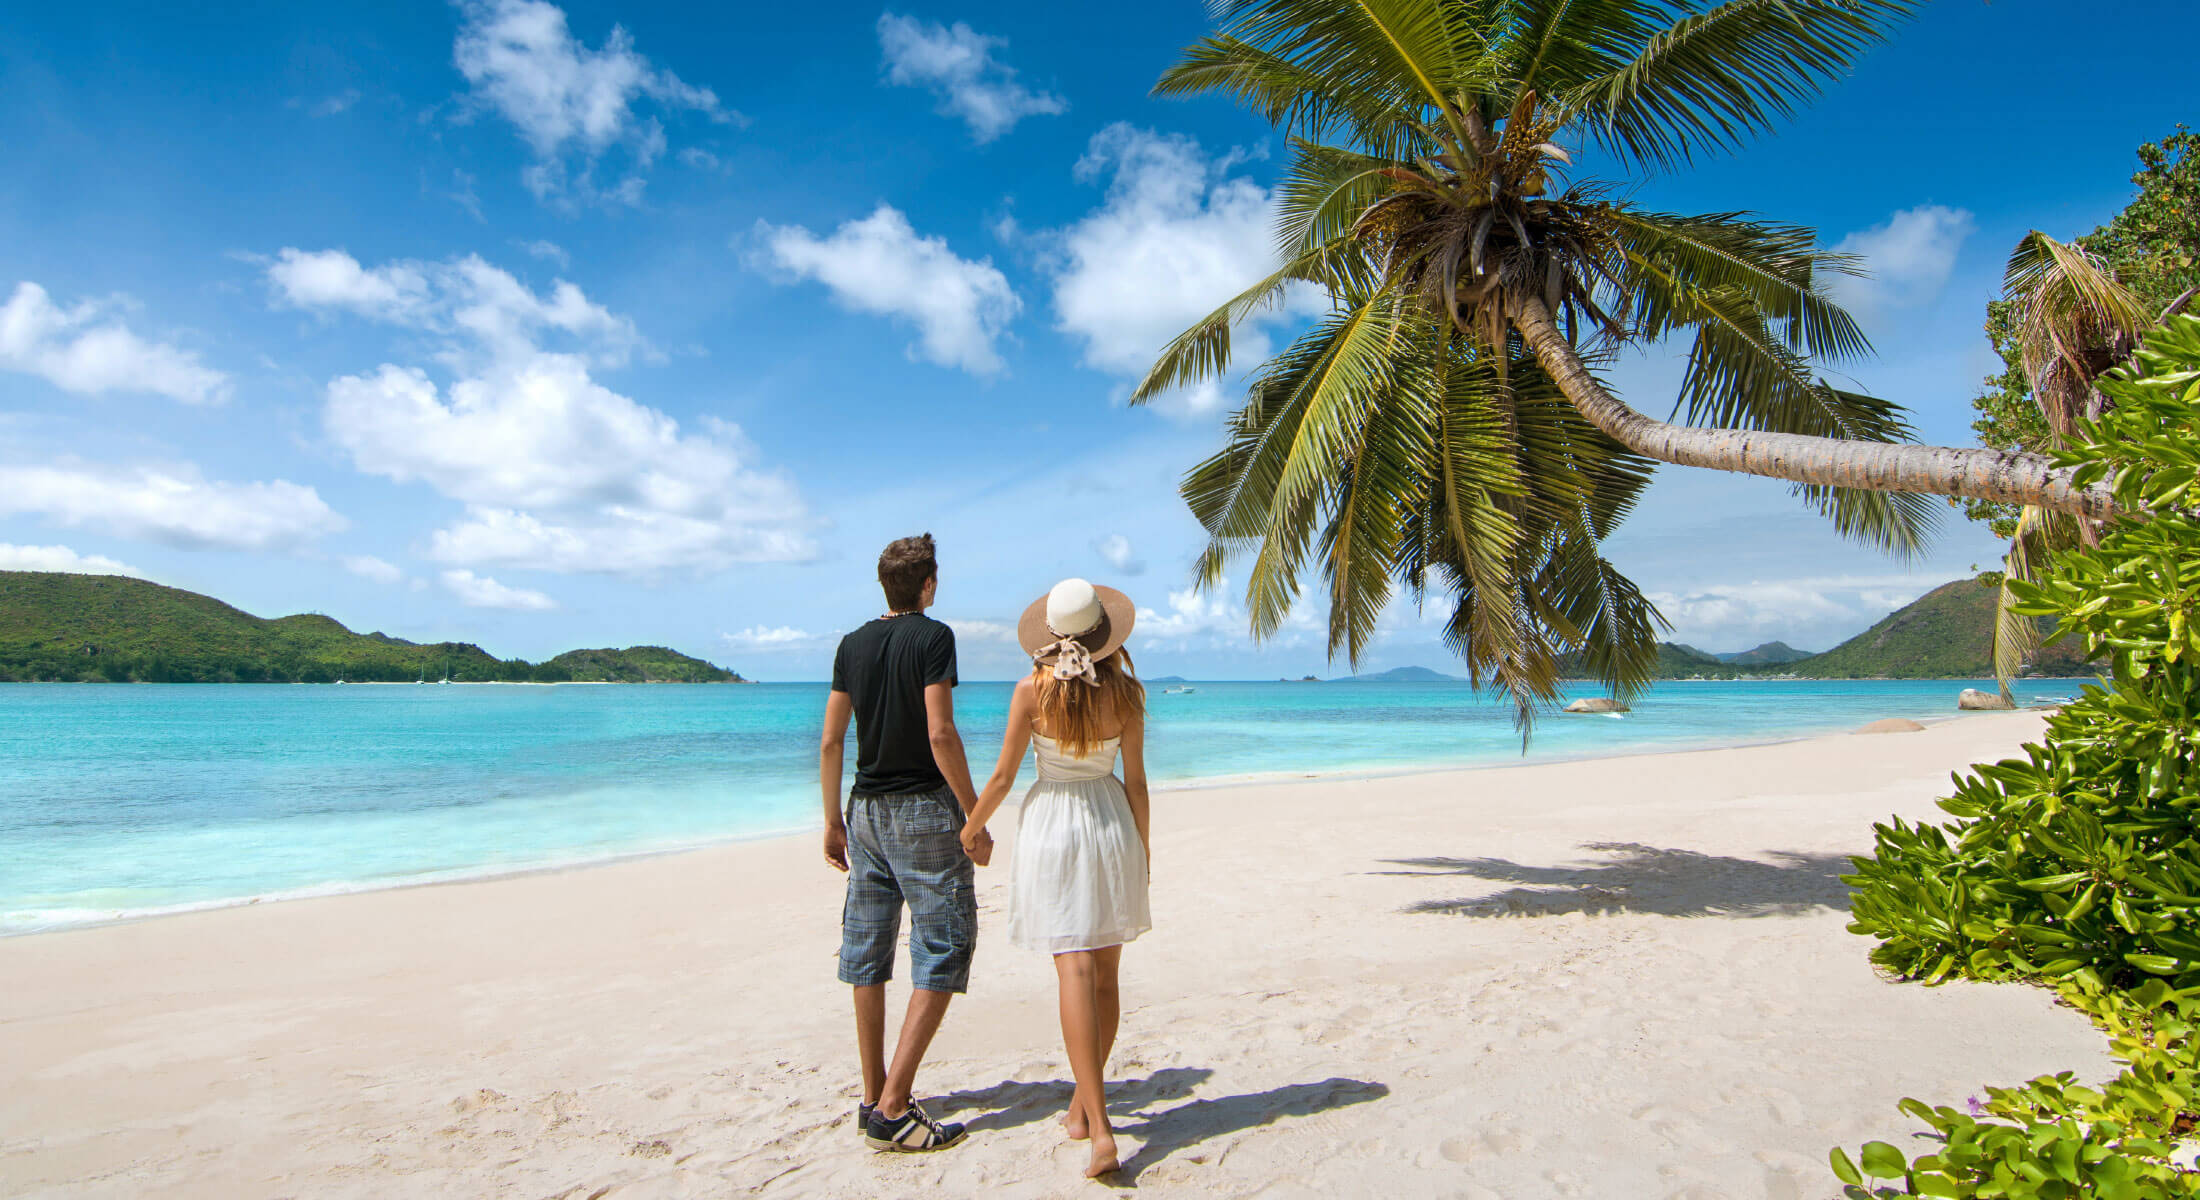 Couple wandering along tropical beach